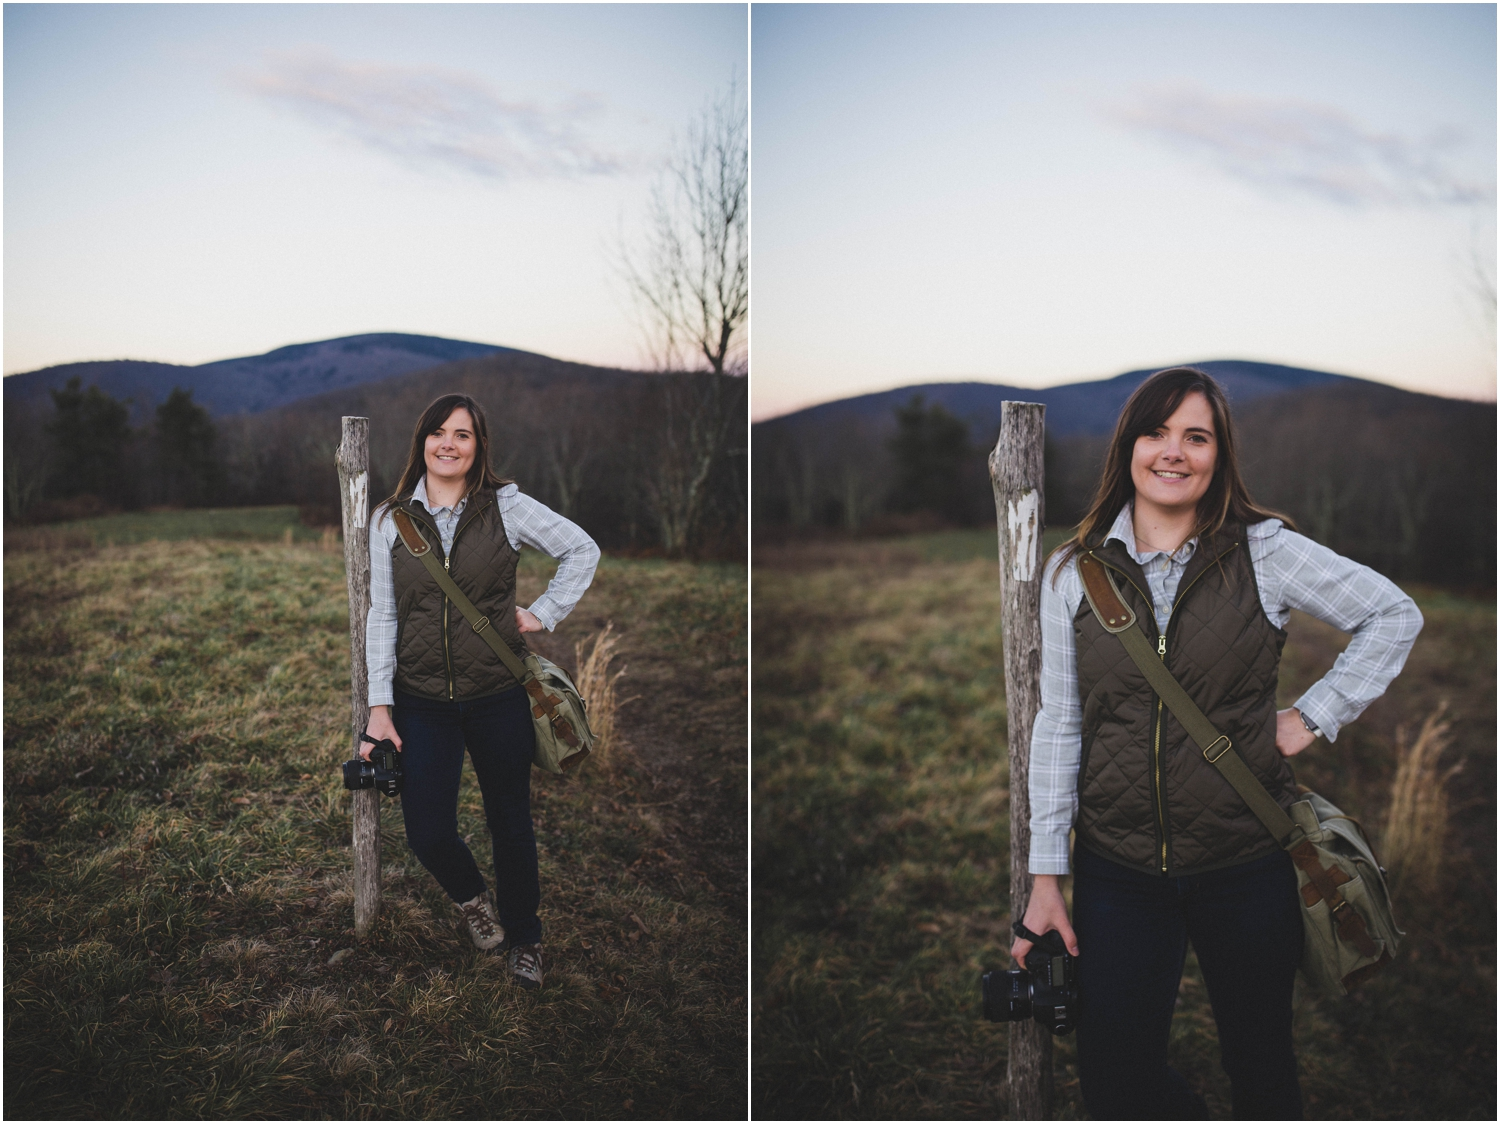 The Appalachian Trail holds a special place in my heart. So glad that Emily let me pose with a white blaze.